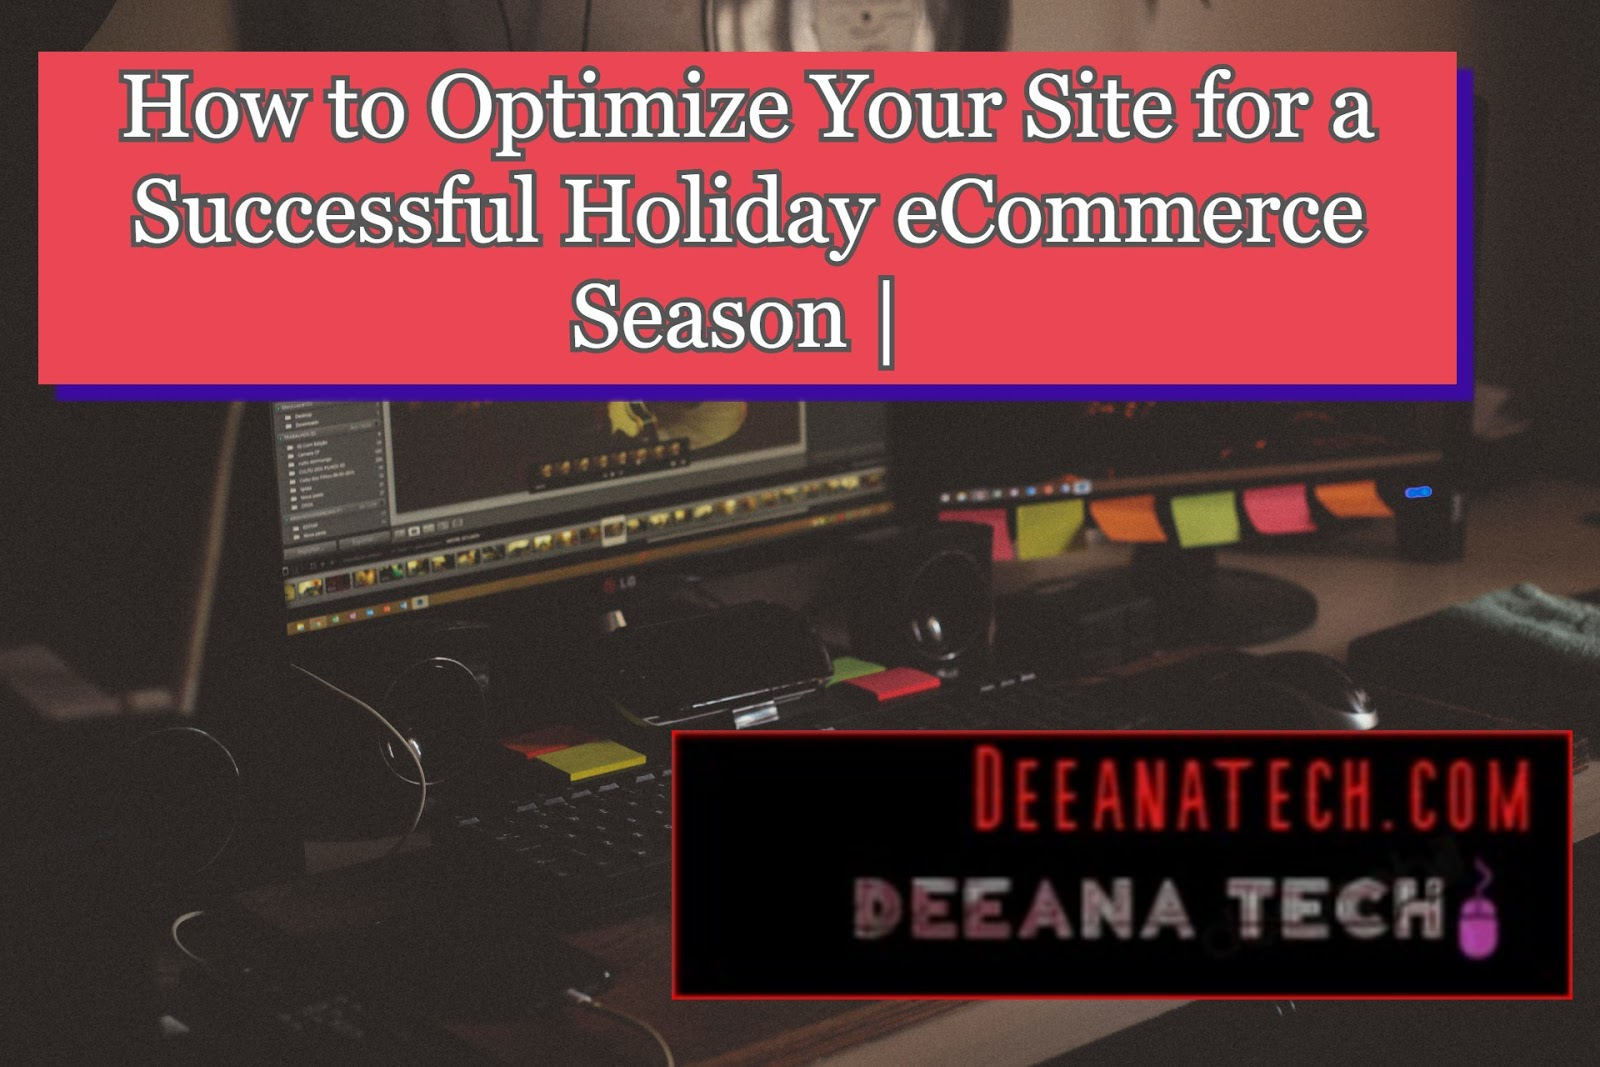 How to Optimize Your Site for a Successful Holiday eCommerce Season | deeanatech.com